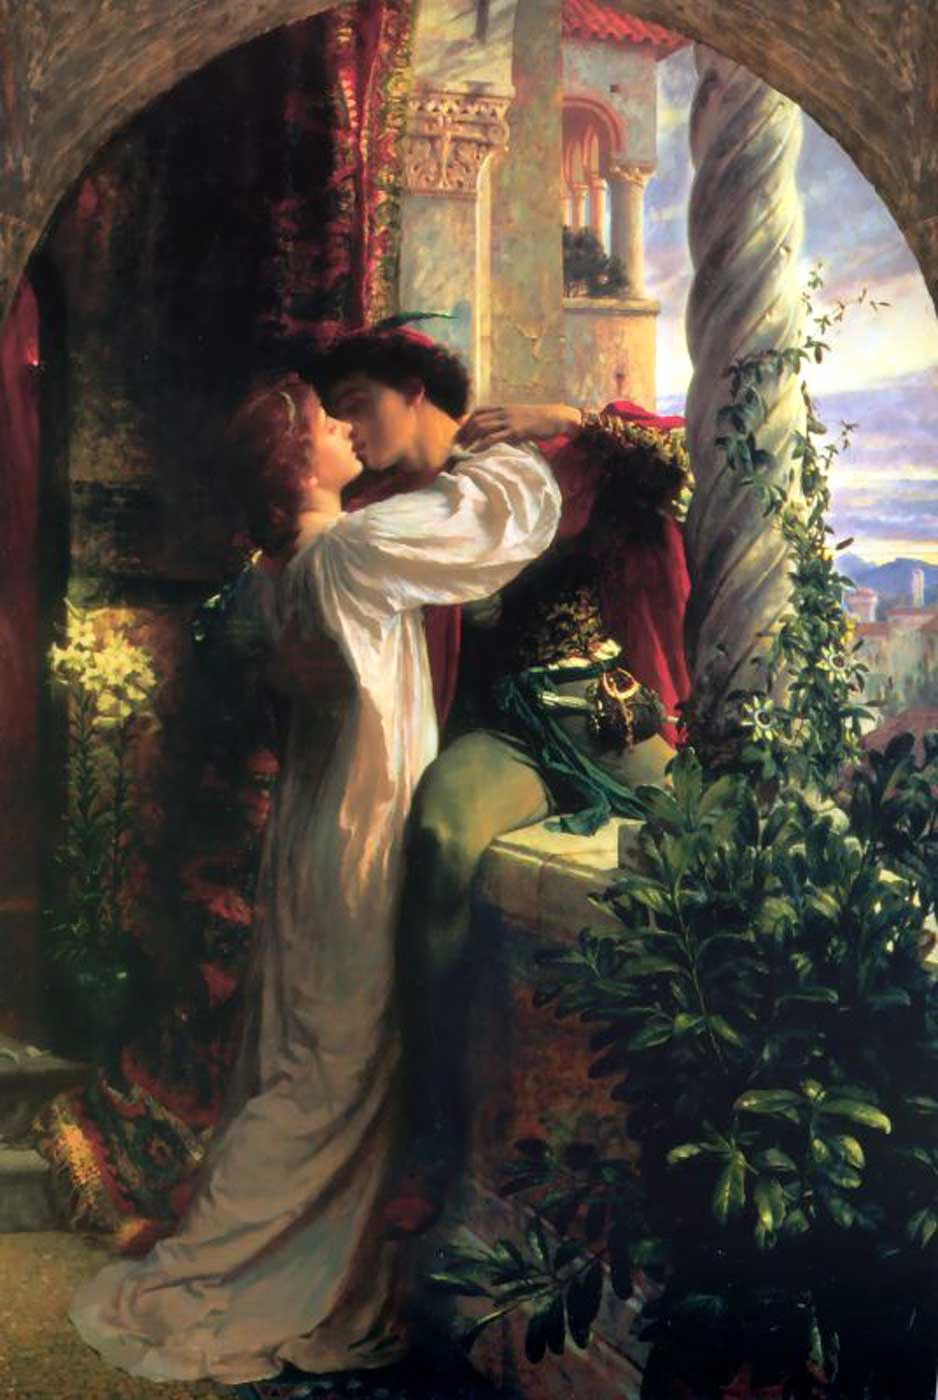 1884 painting of Romeo and Juliet by Frank Bernard Dicksee.